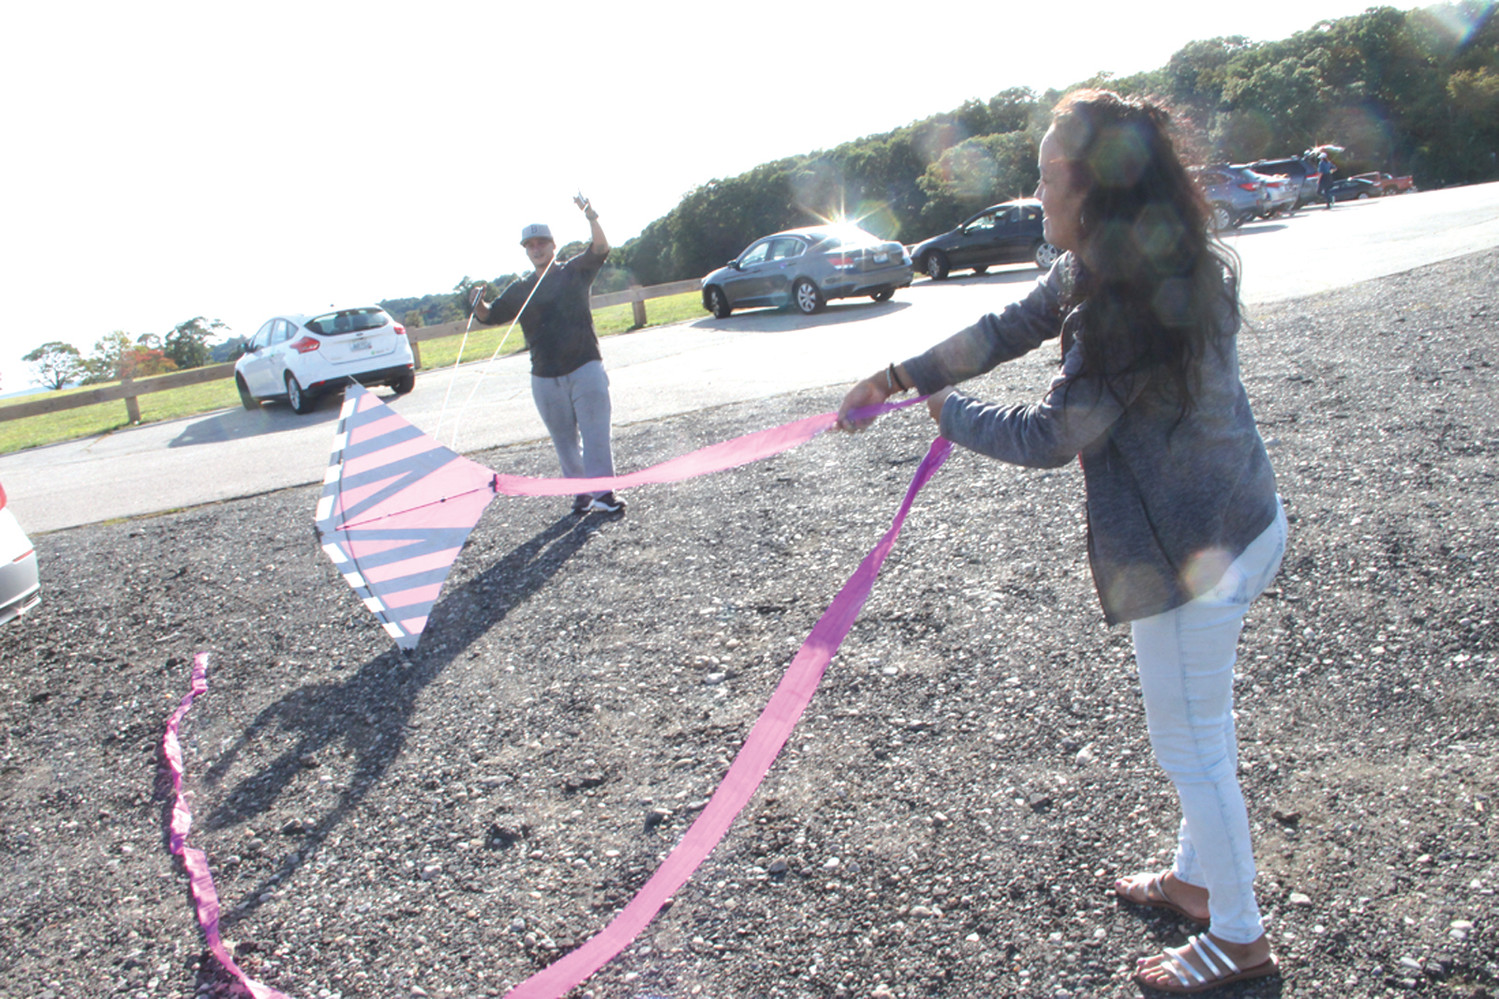 MAKING READY: Jonattan Acevedo and Mimarys Melendez prepare to fly a kite. A little more wind would have been helpful.